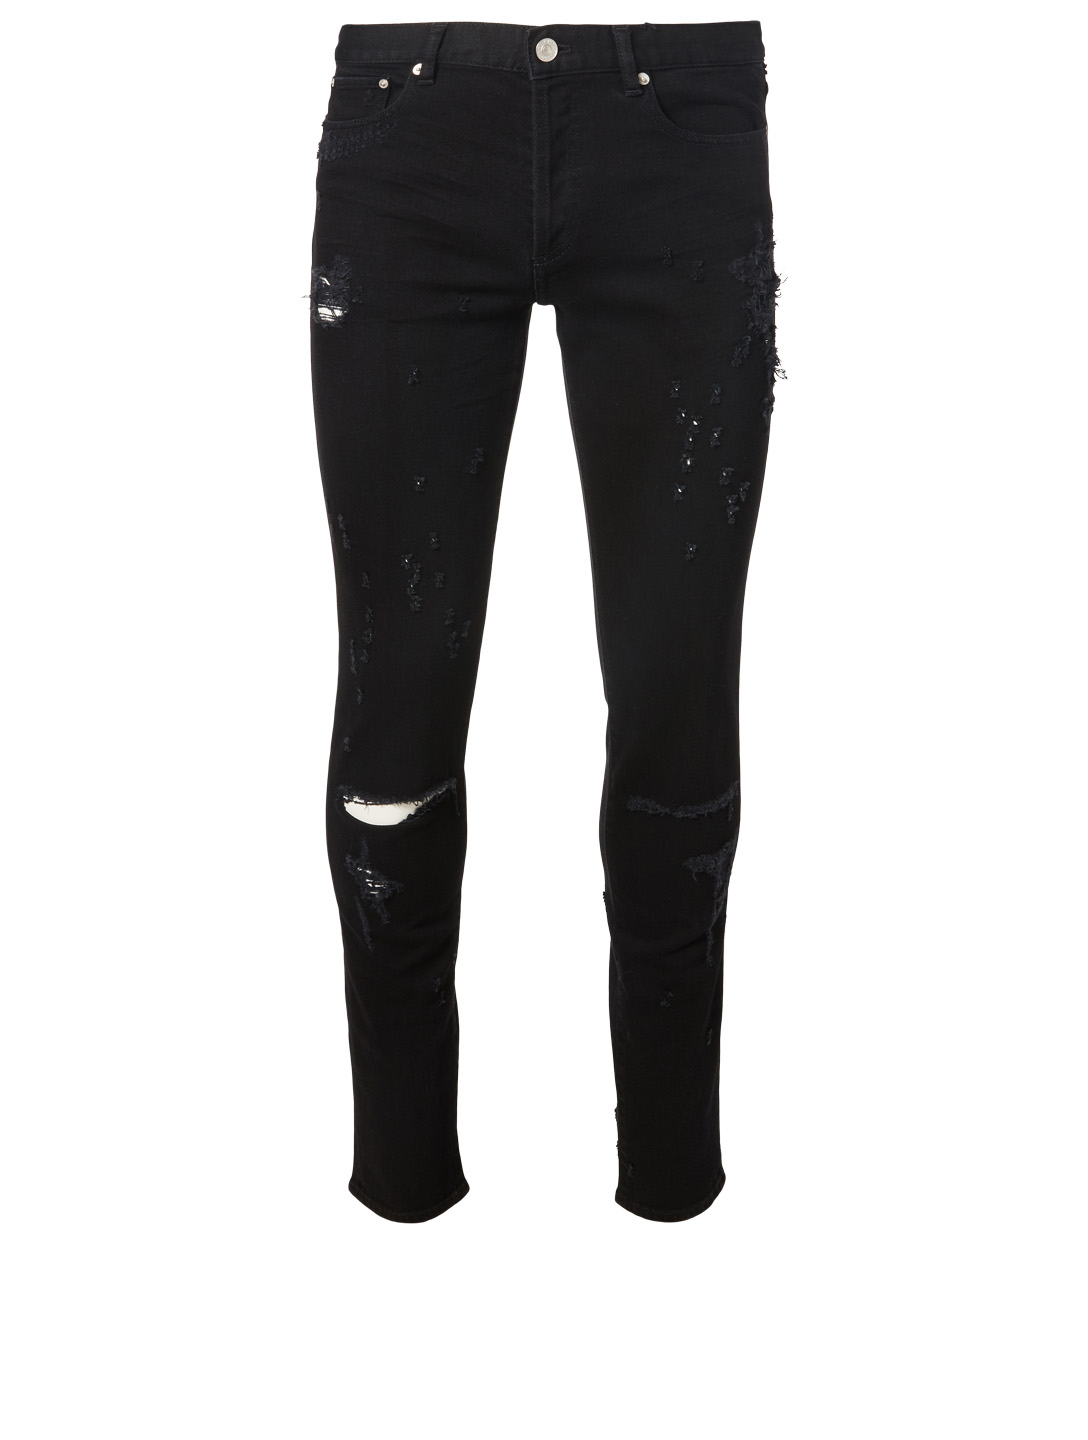 GIVENCHY Ripped Skinny Jeans Men's Black